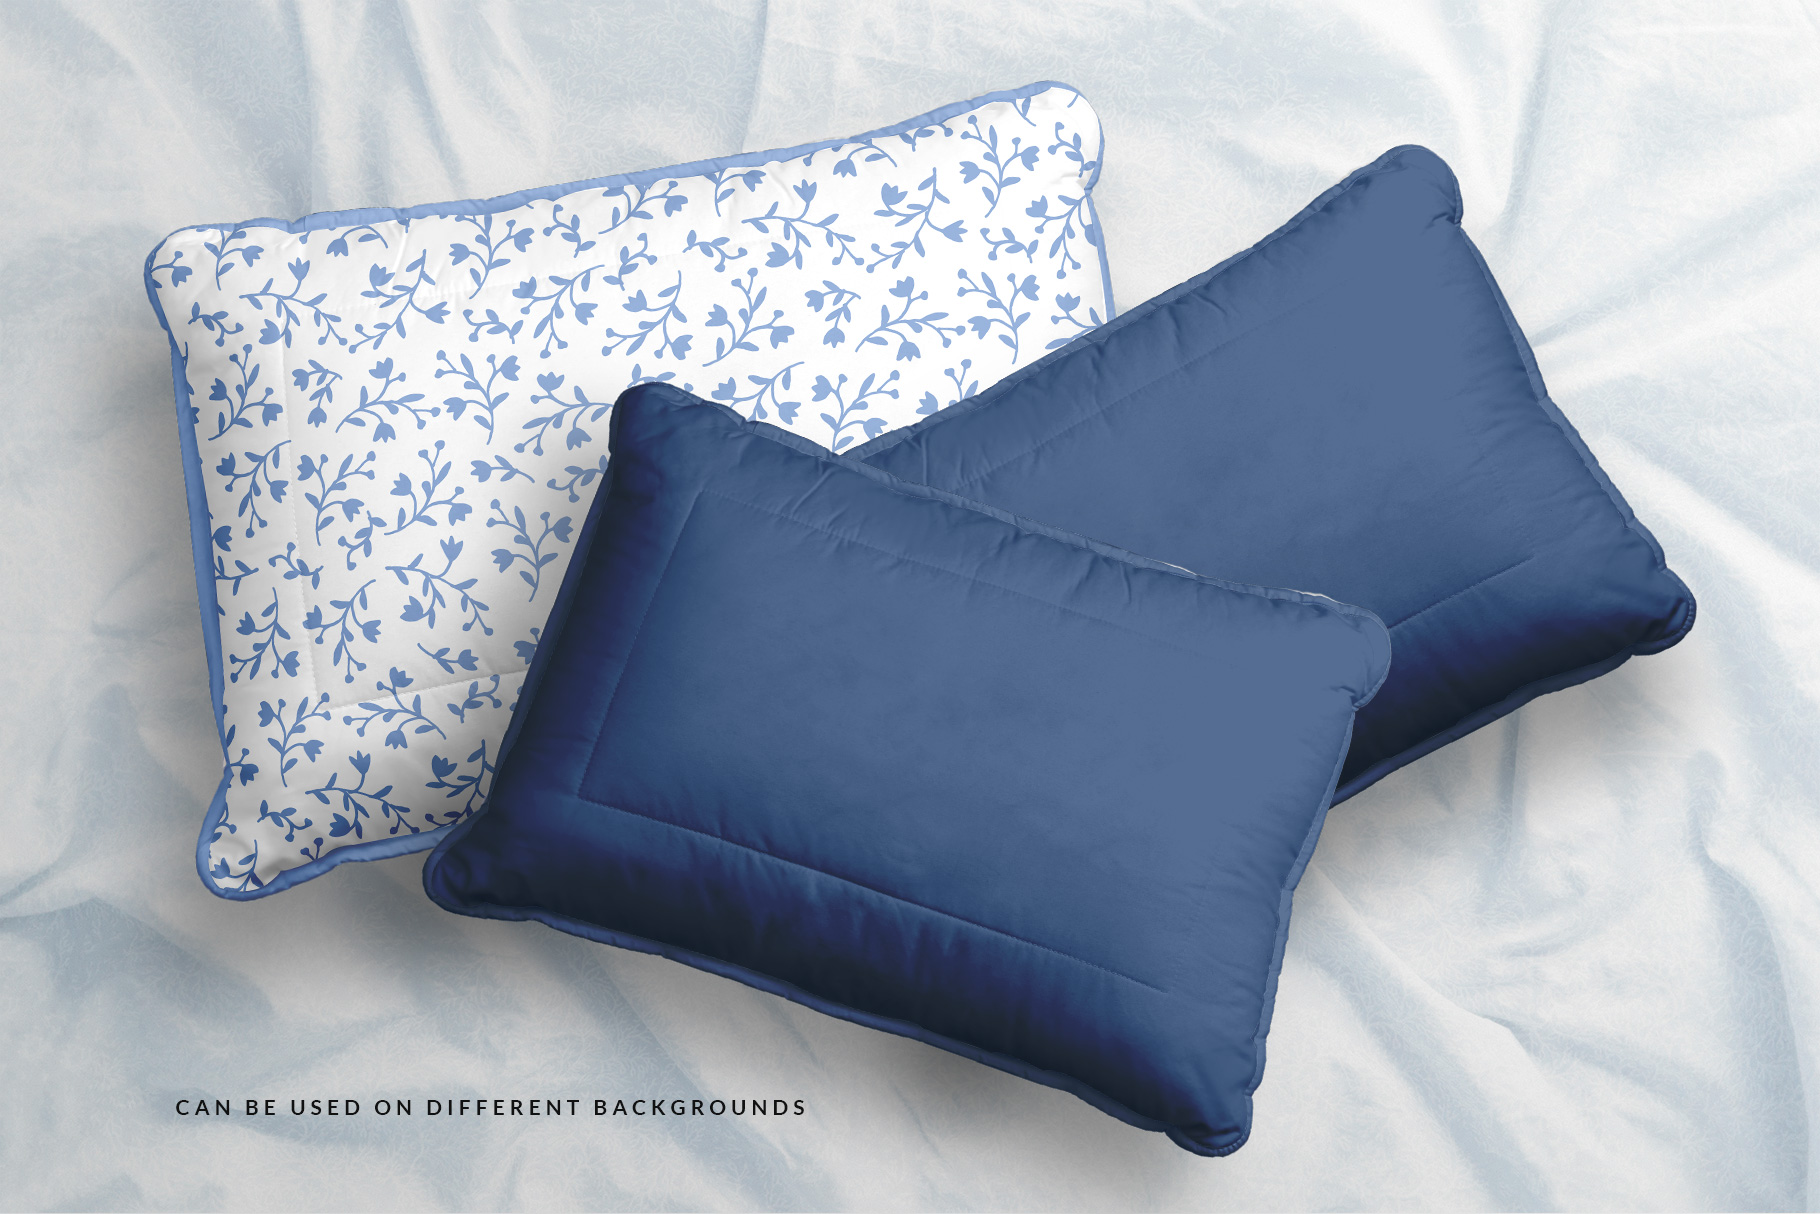 creative use of the soft bed pillow mockup